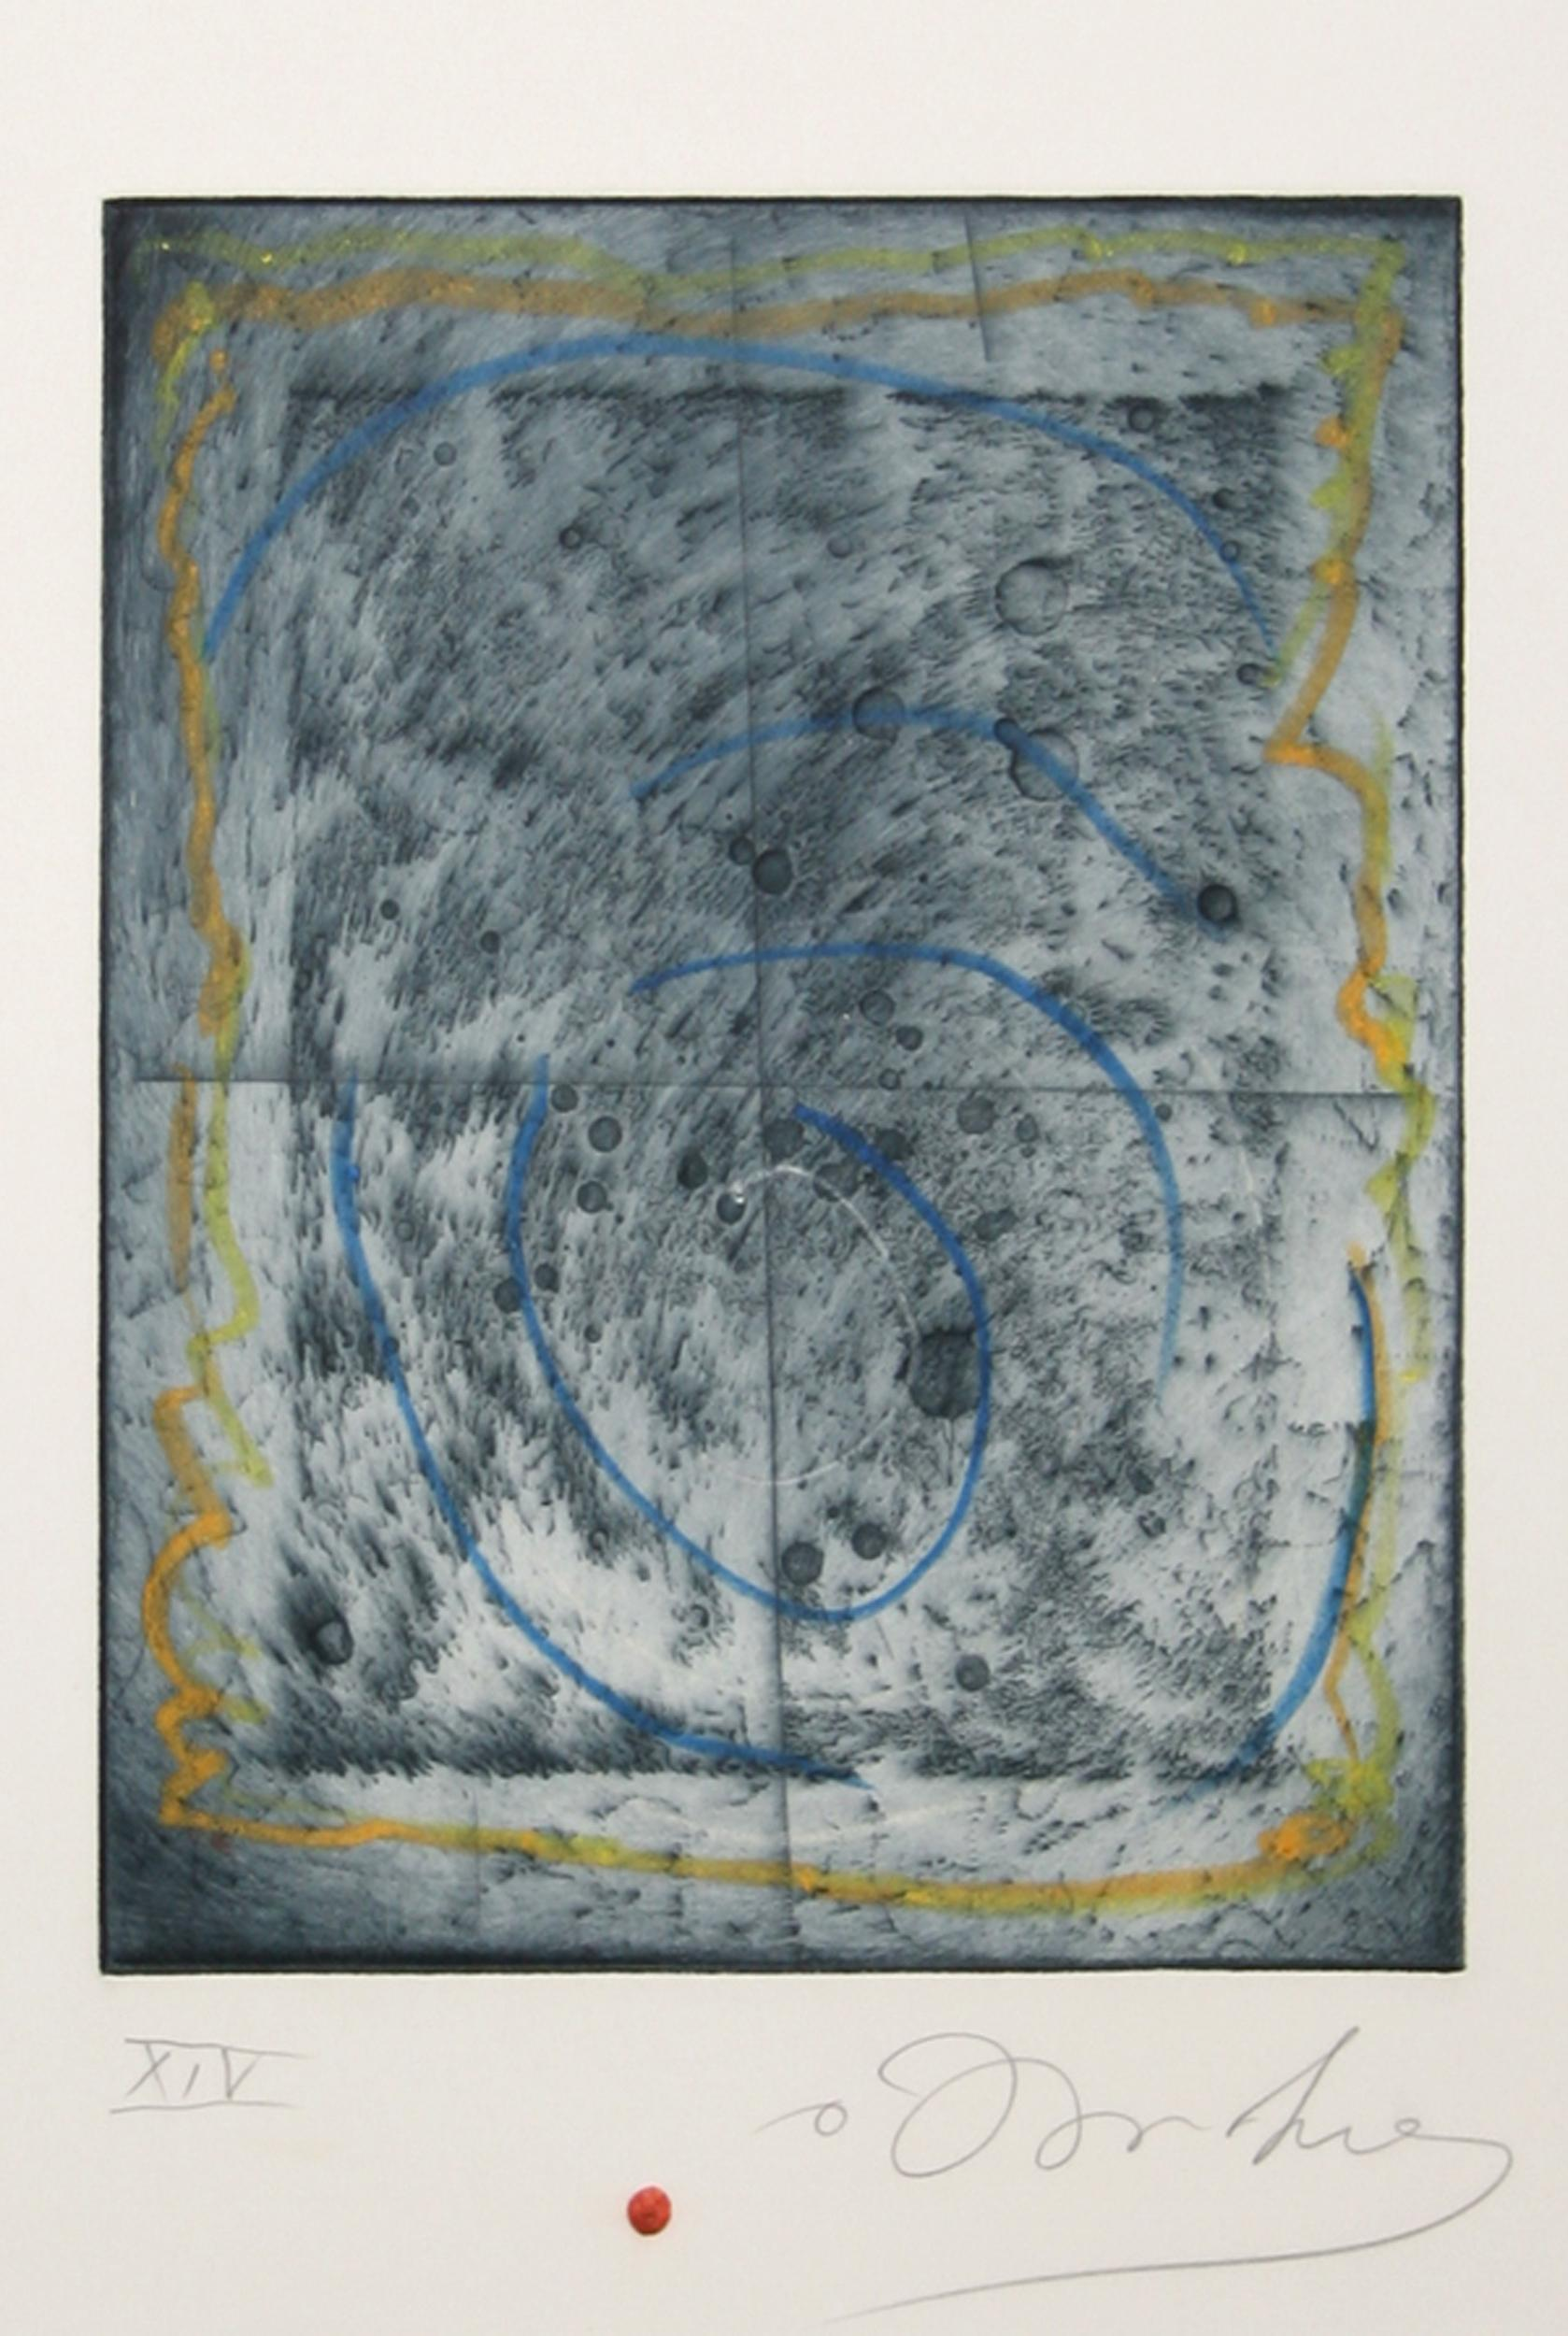 Tighe O'Donoghue, Lunar Abstract, Aquatint Etching